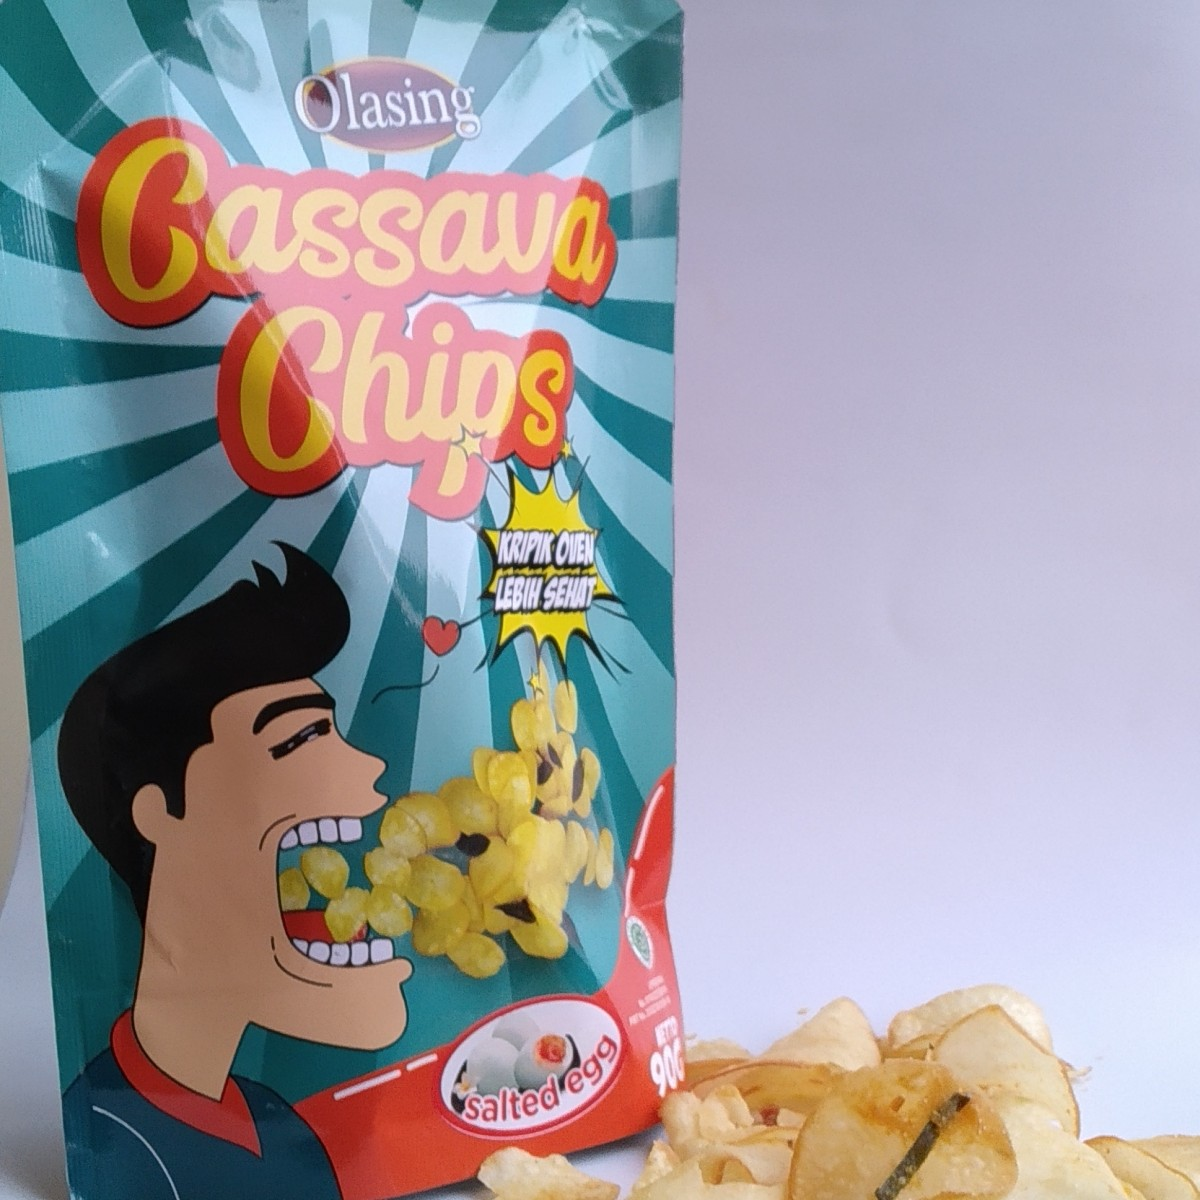 Cassava chips rasa Salted egg